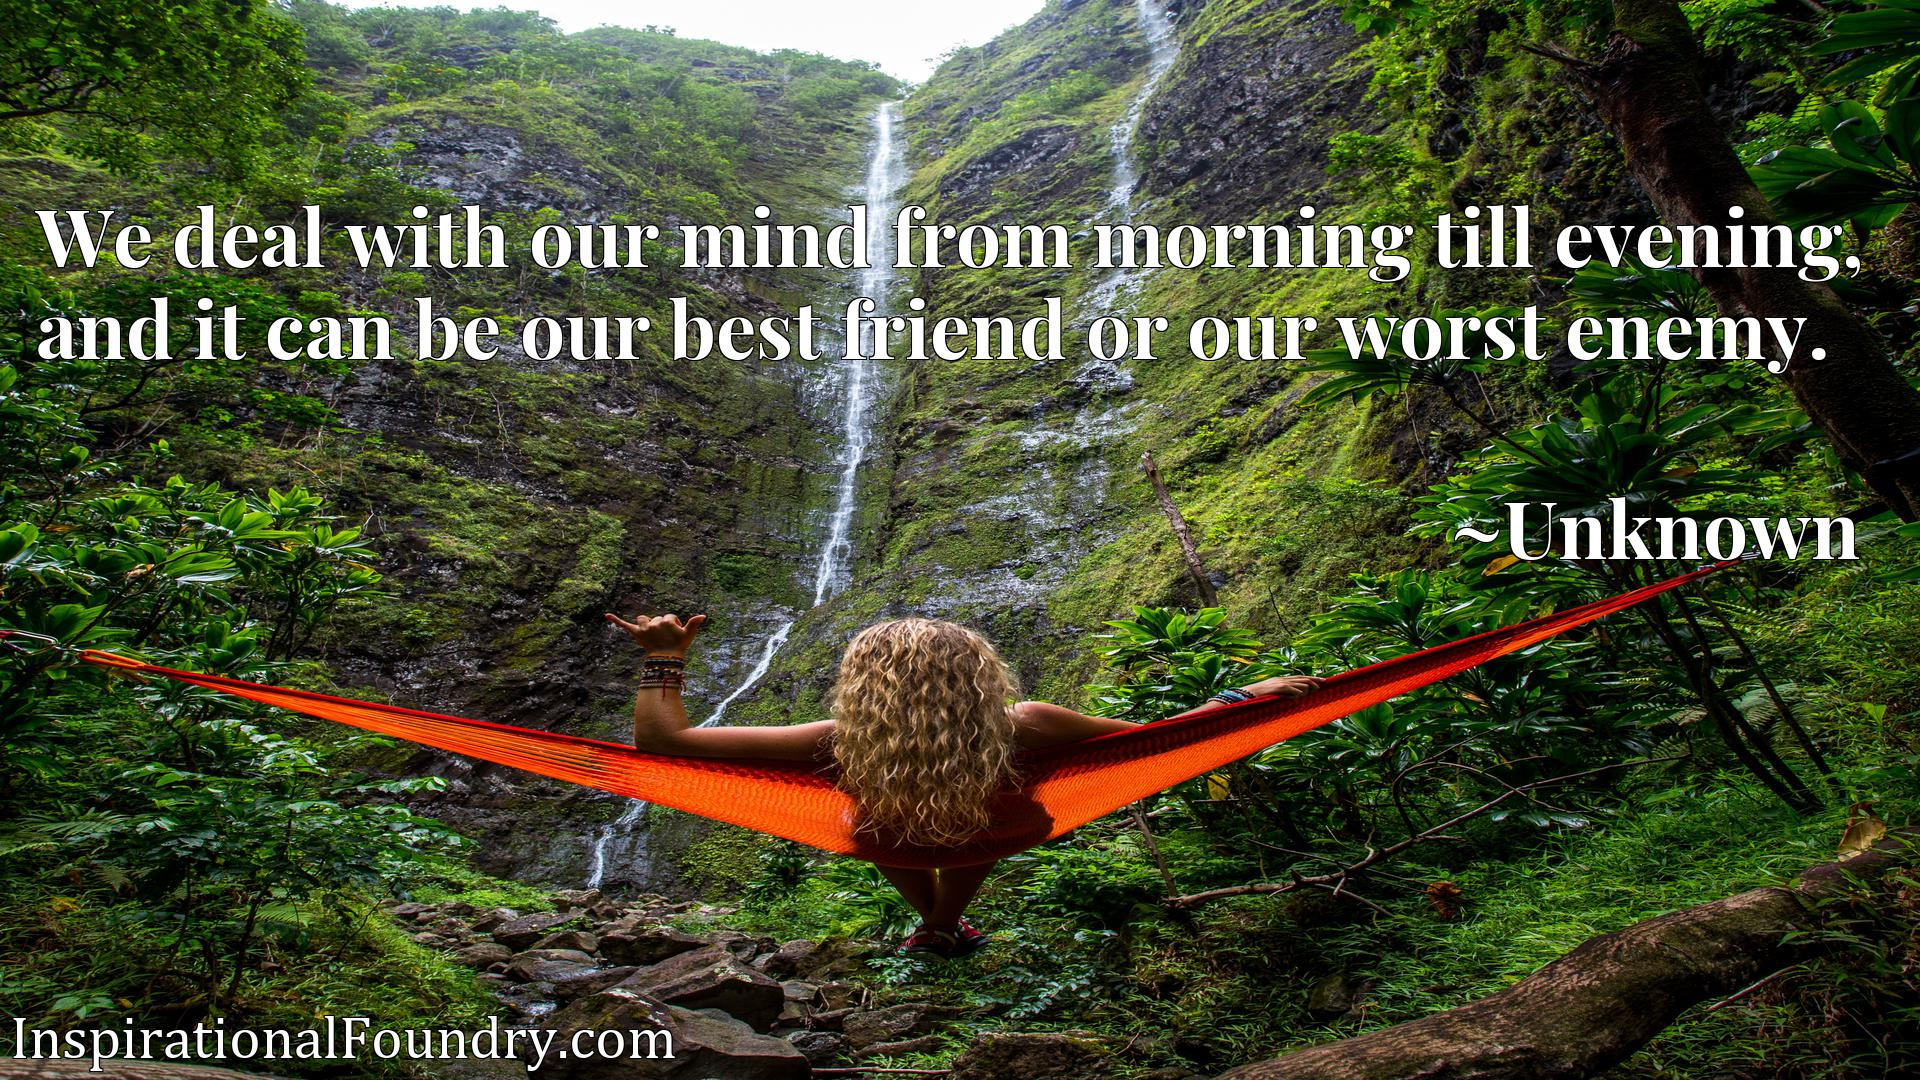 We deal with our mind from morning till evening, and it can be our best friend or our worst enemy.